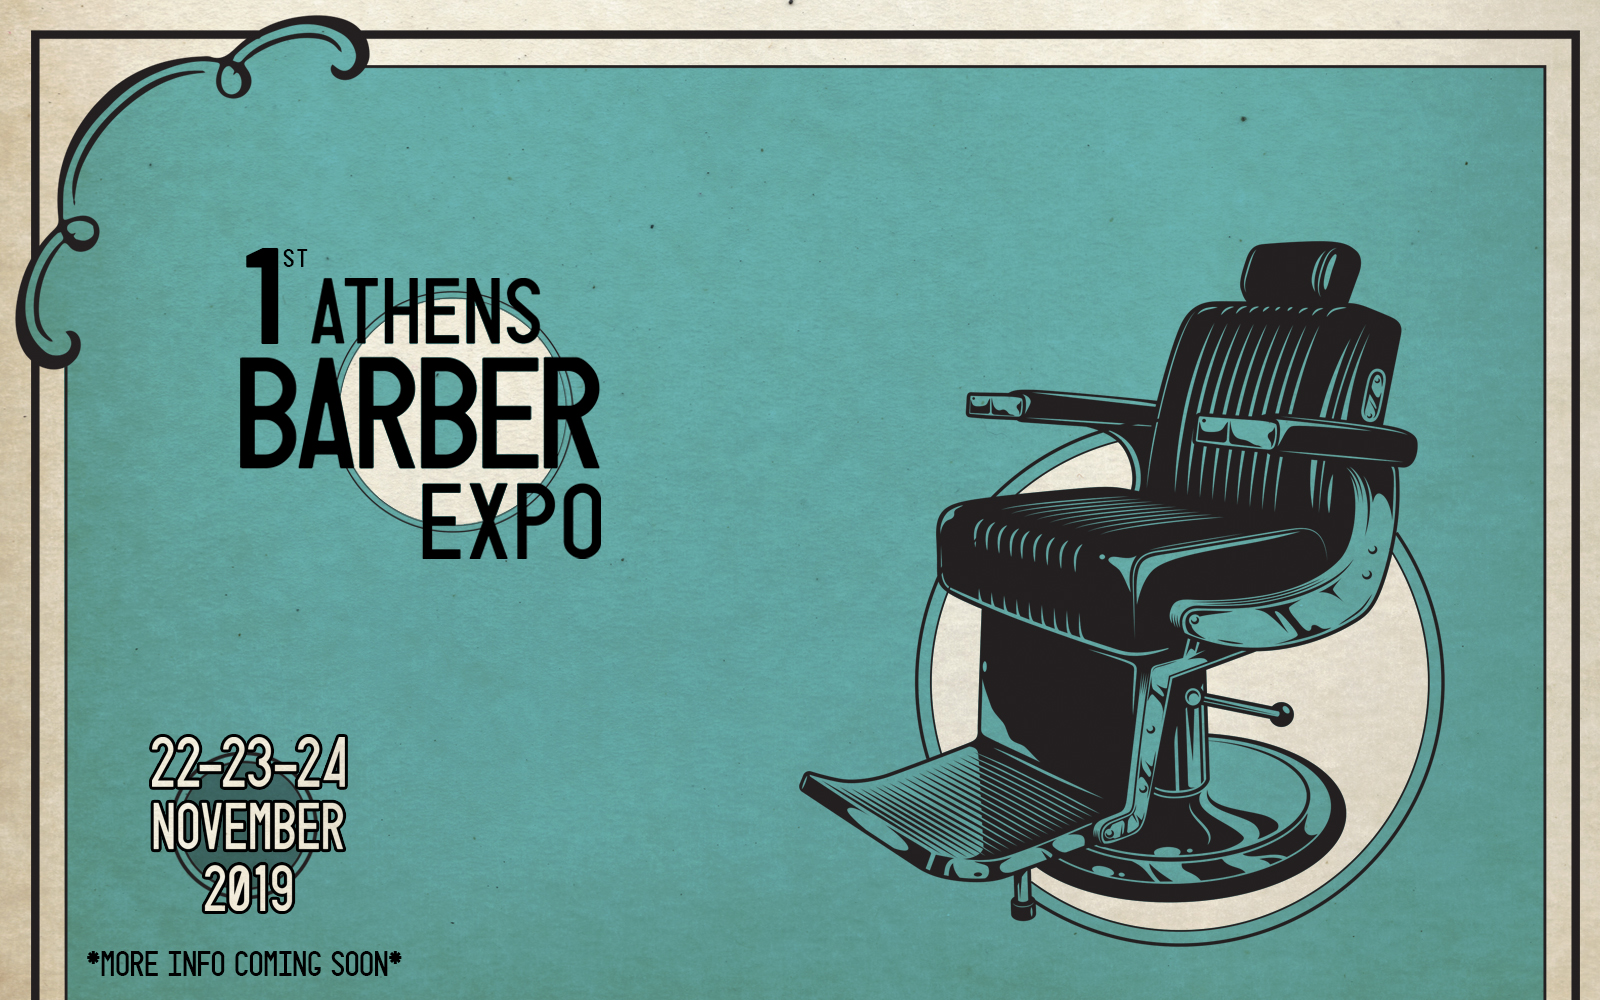 Athens Barber Expo – Athens Tattoo Expo